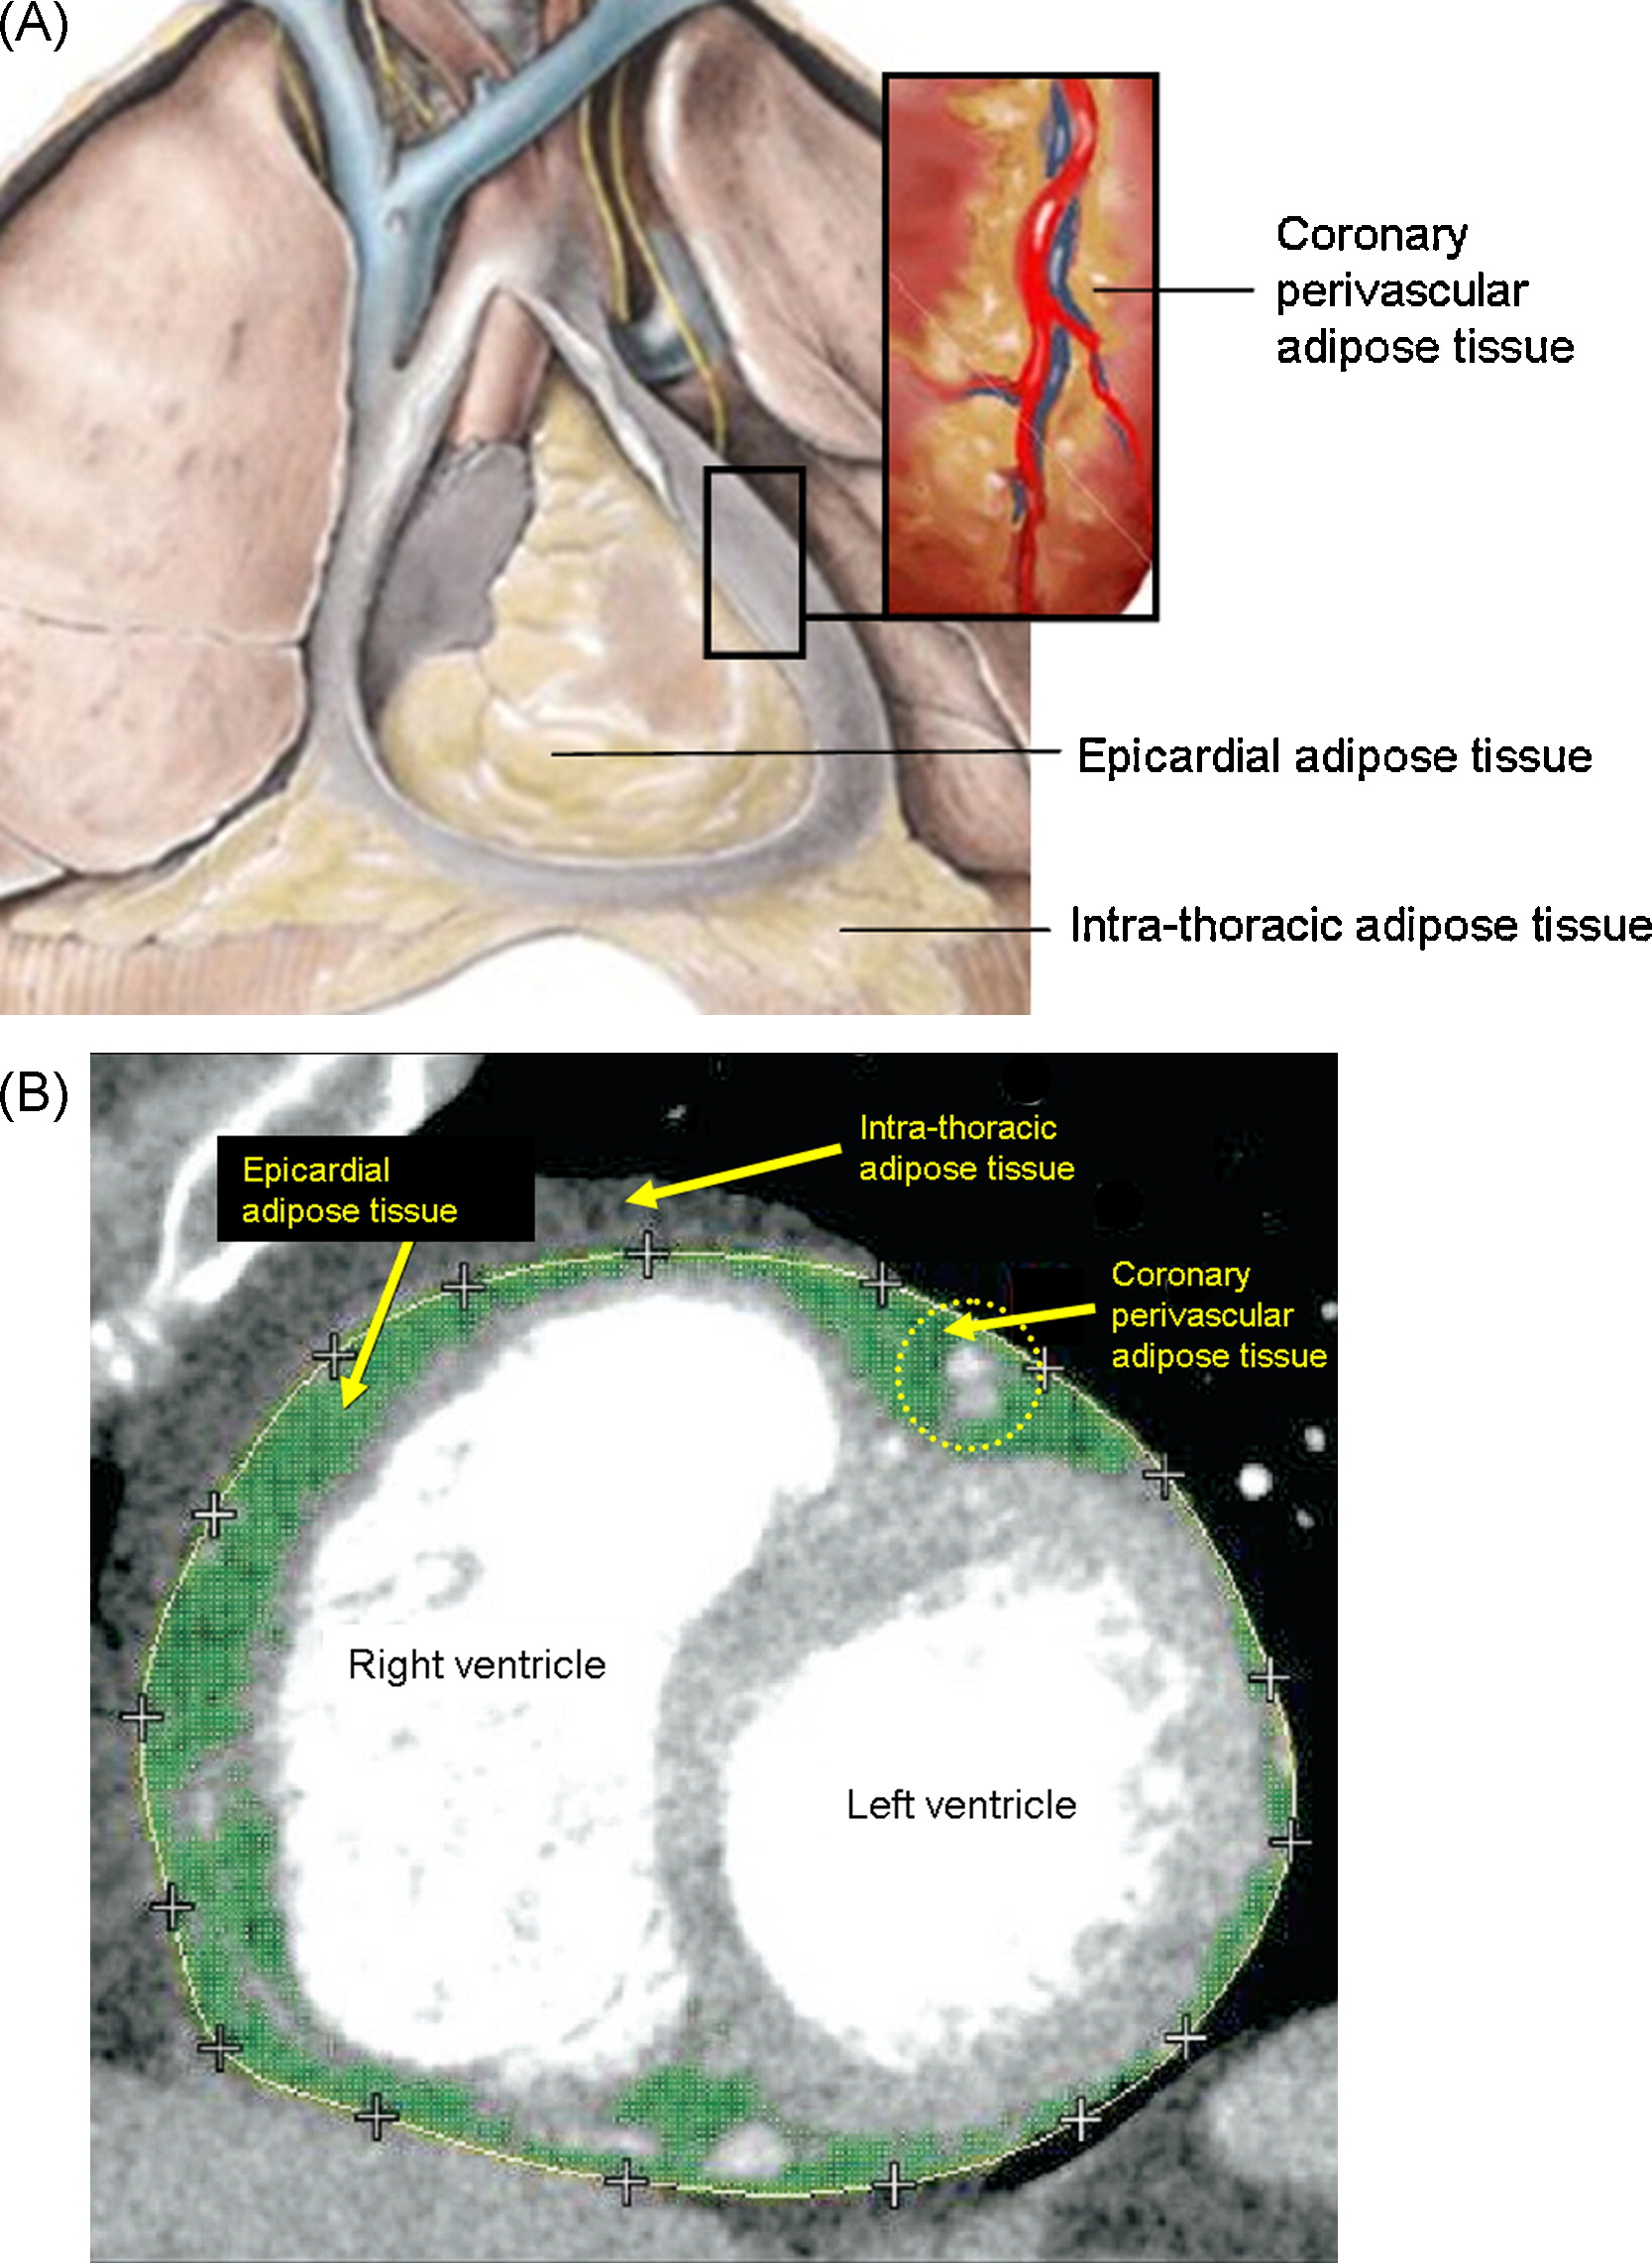 Perivascular Adipose Tissue As A Cause Of Atherosclerosis